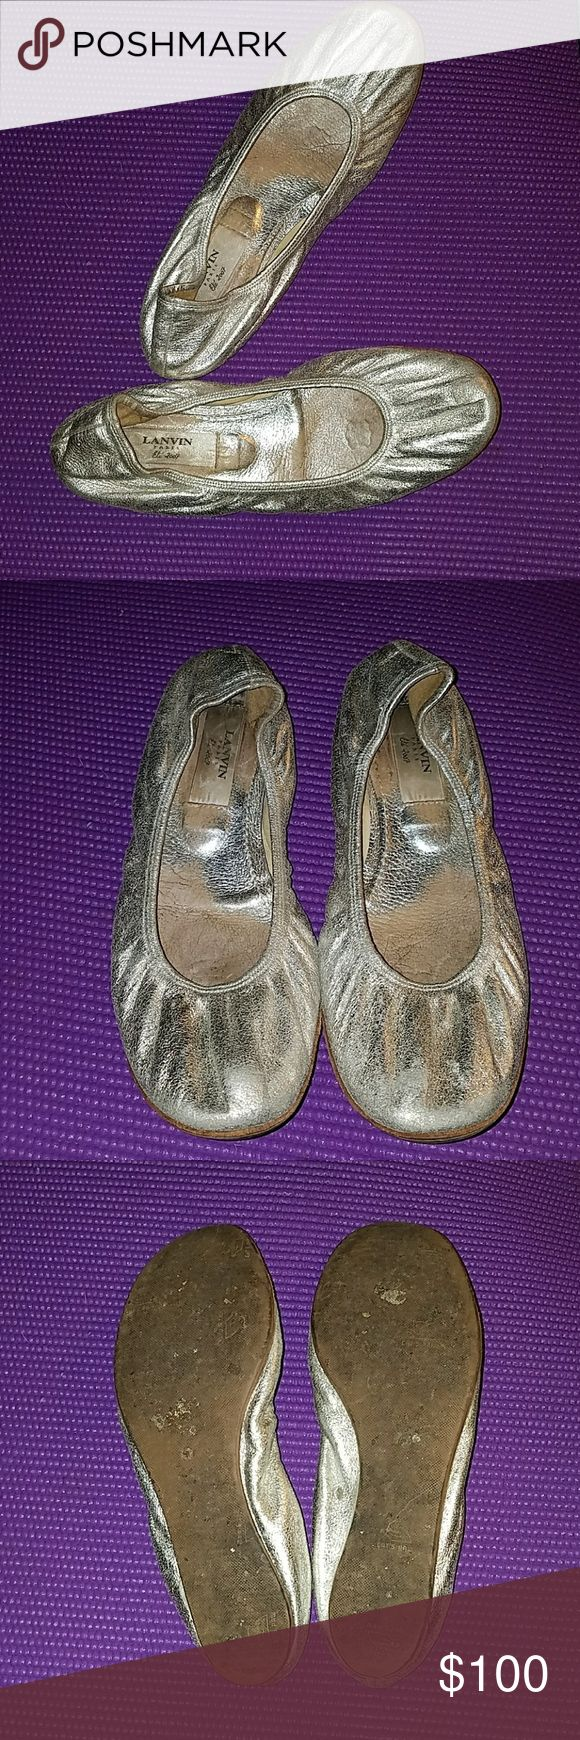 LANVIN silver ballet flats Size 8 Darling authentic LANVIN Paris metallic silver flats. Dress them up or down.....wear with jeans or a black suit! Very comfortable and worn in but still have so much life left in them! Lanvin Shoes Flats & Loafers